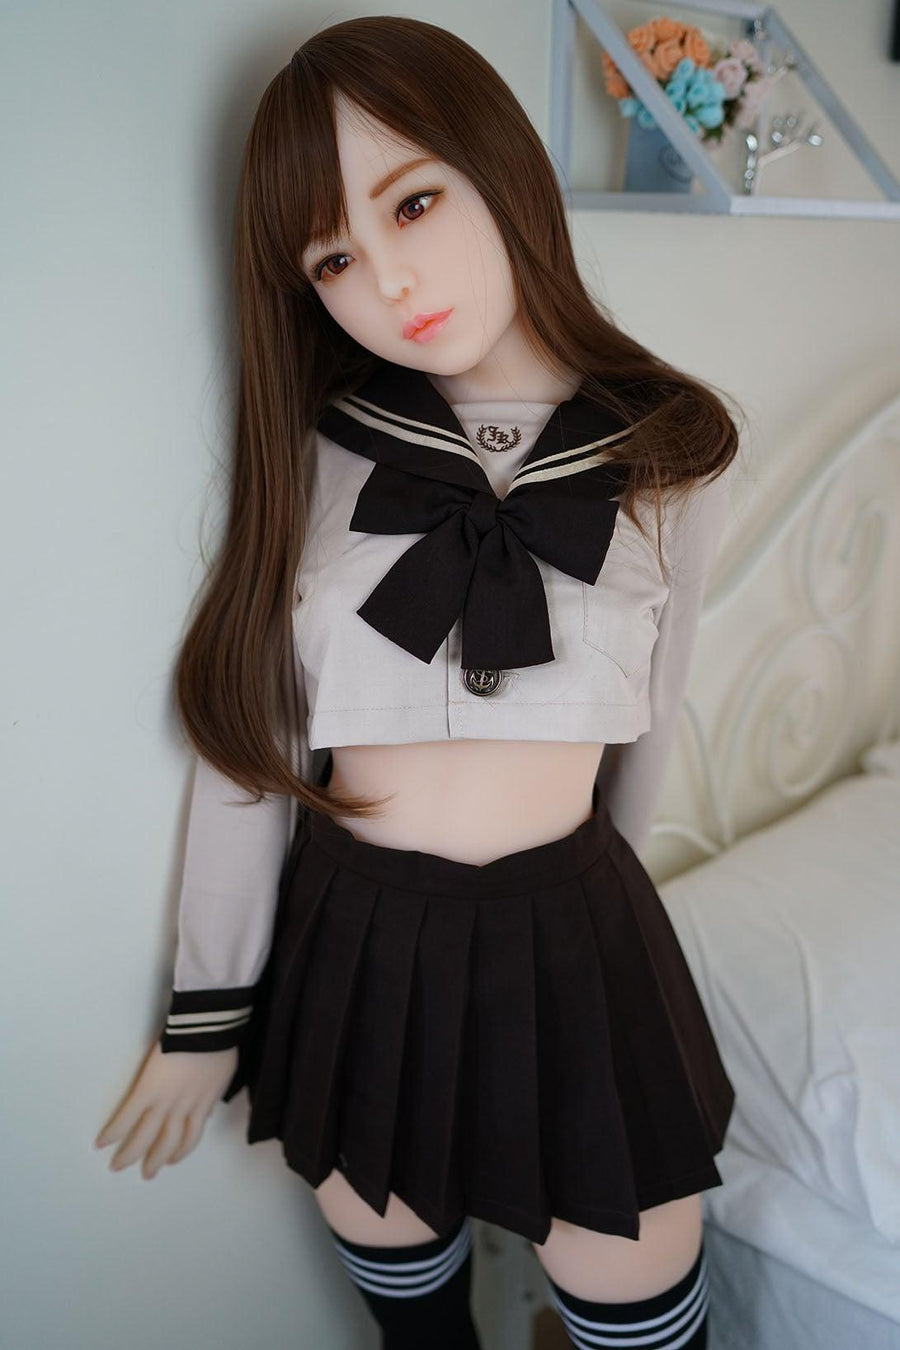 IN-STOCK - Clothing - Piper Doll Brown Sailor Outfit